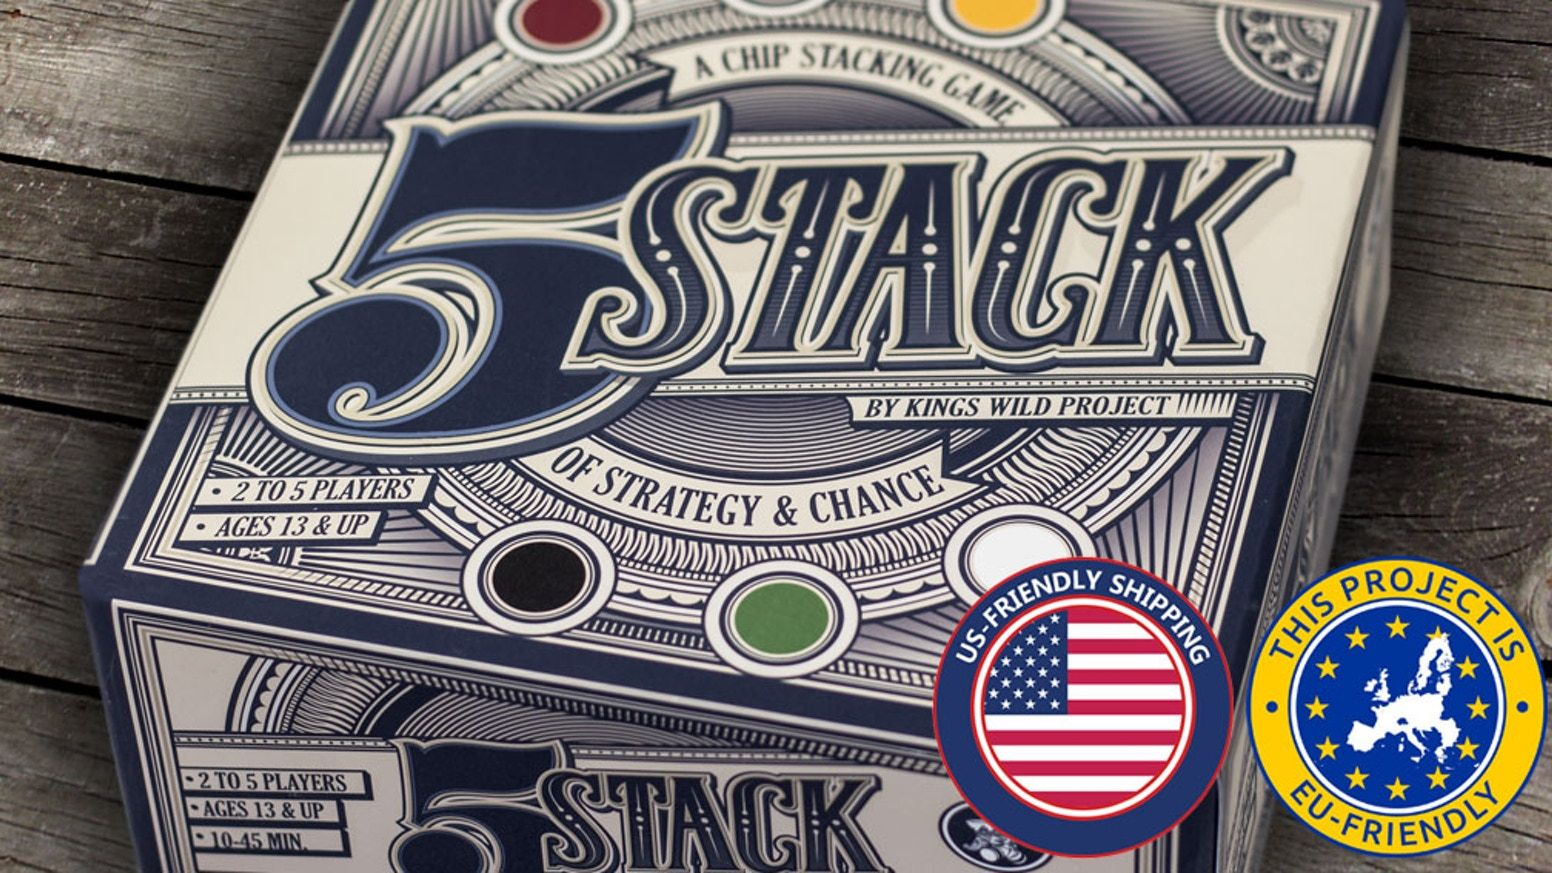 5 Stack, A Chip Stacking Game of Strategy and Chance by